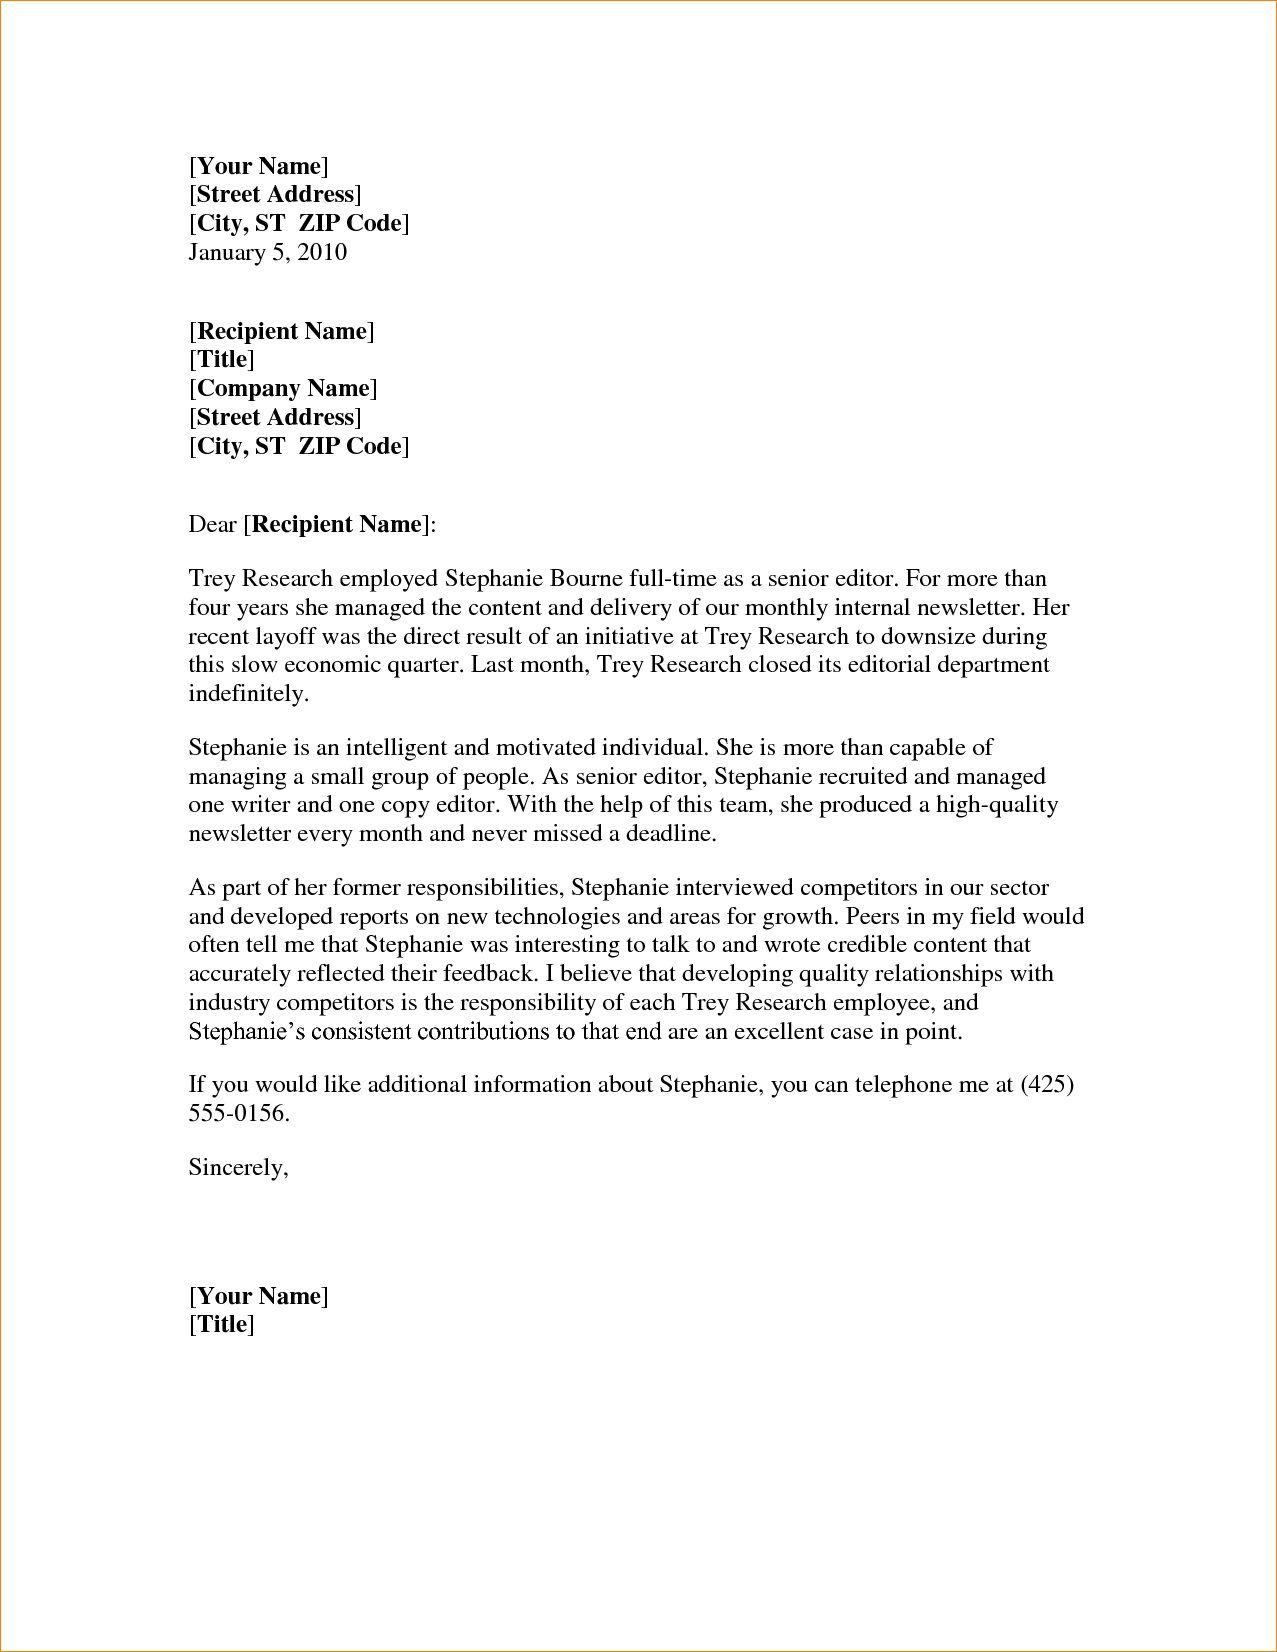 008 Excellent Letter Of Recommendation Template Word Sample  General Free DocFull